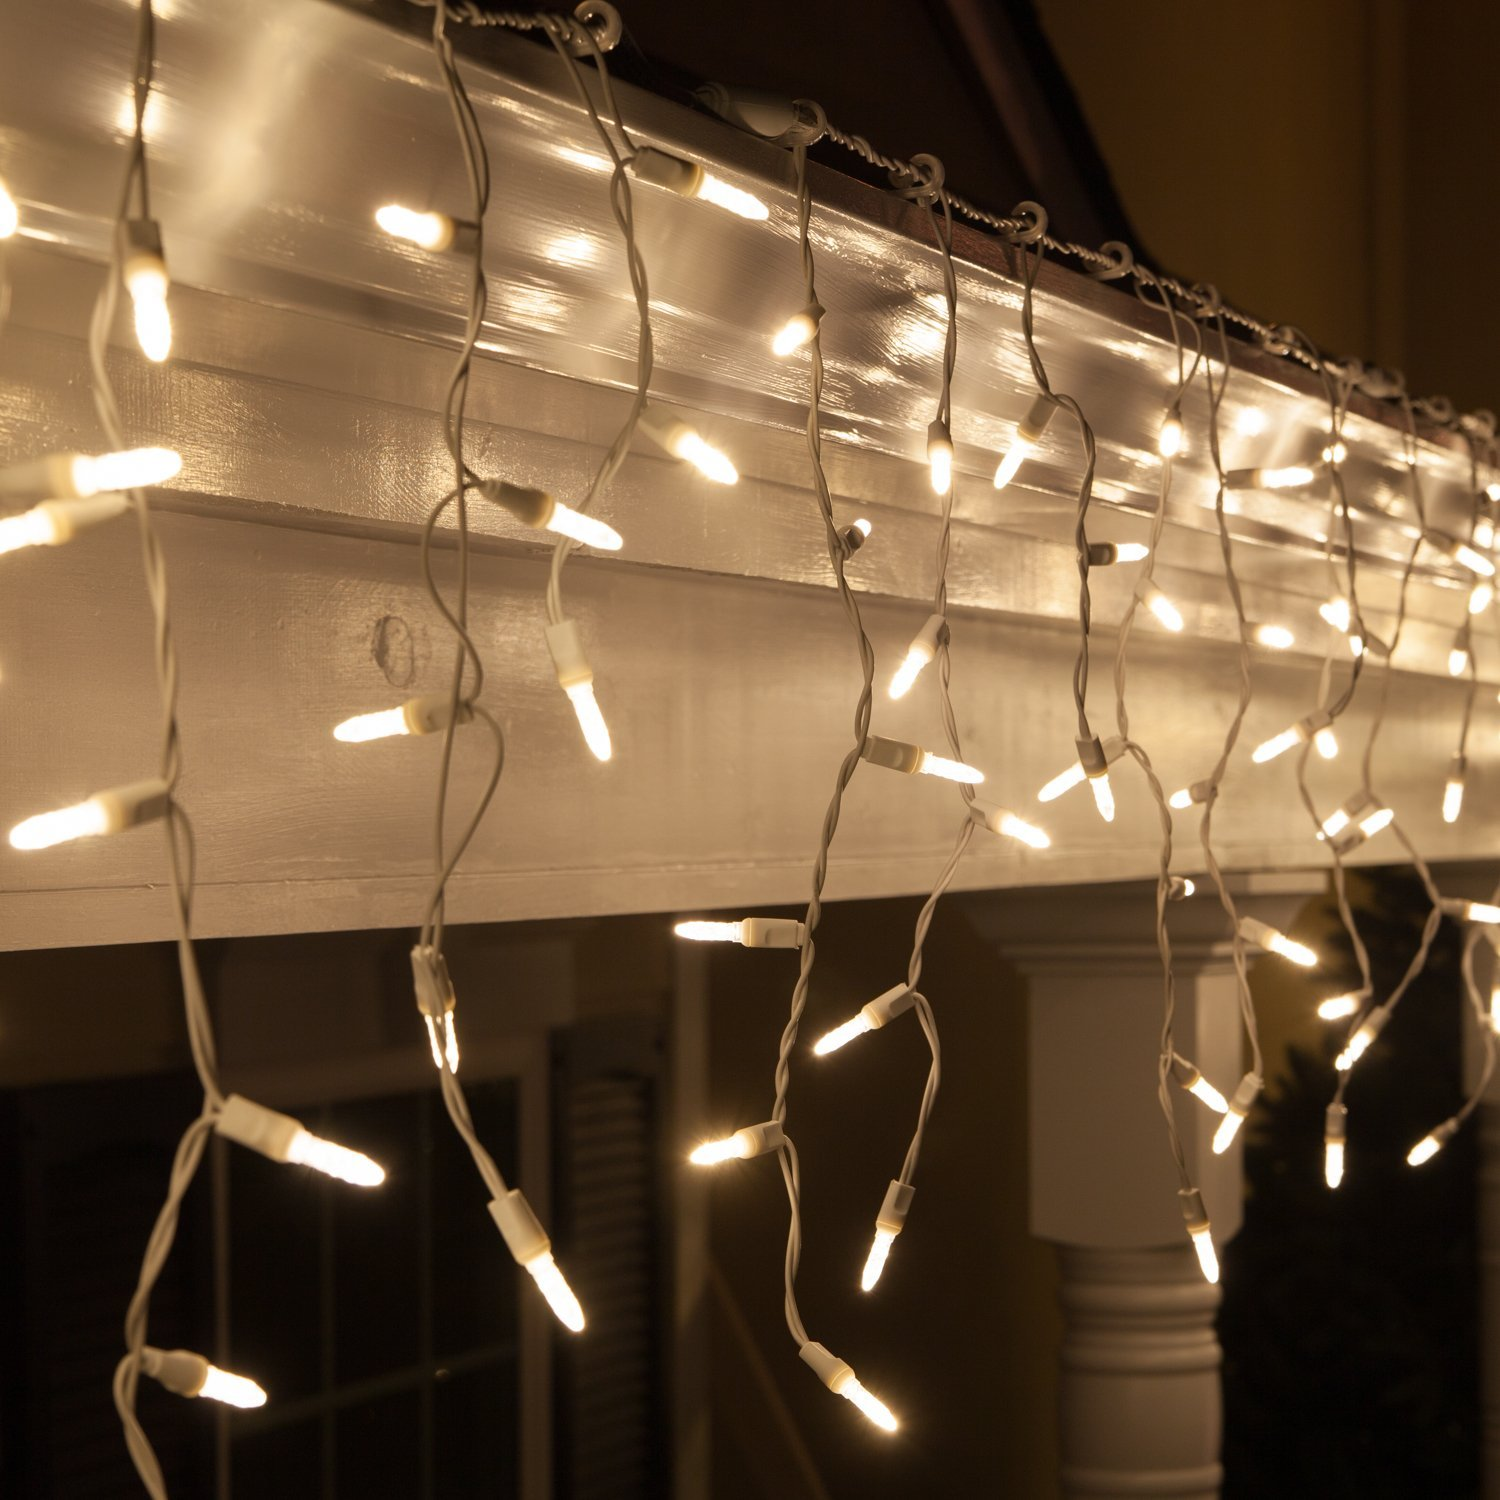 Get Quotations 70 Warm White Led Icicle Lights 7 5 Wire Outdoor Christmas Holiday